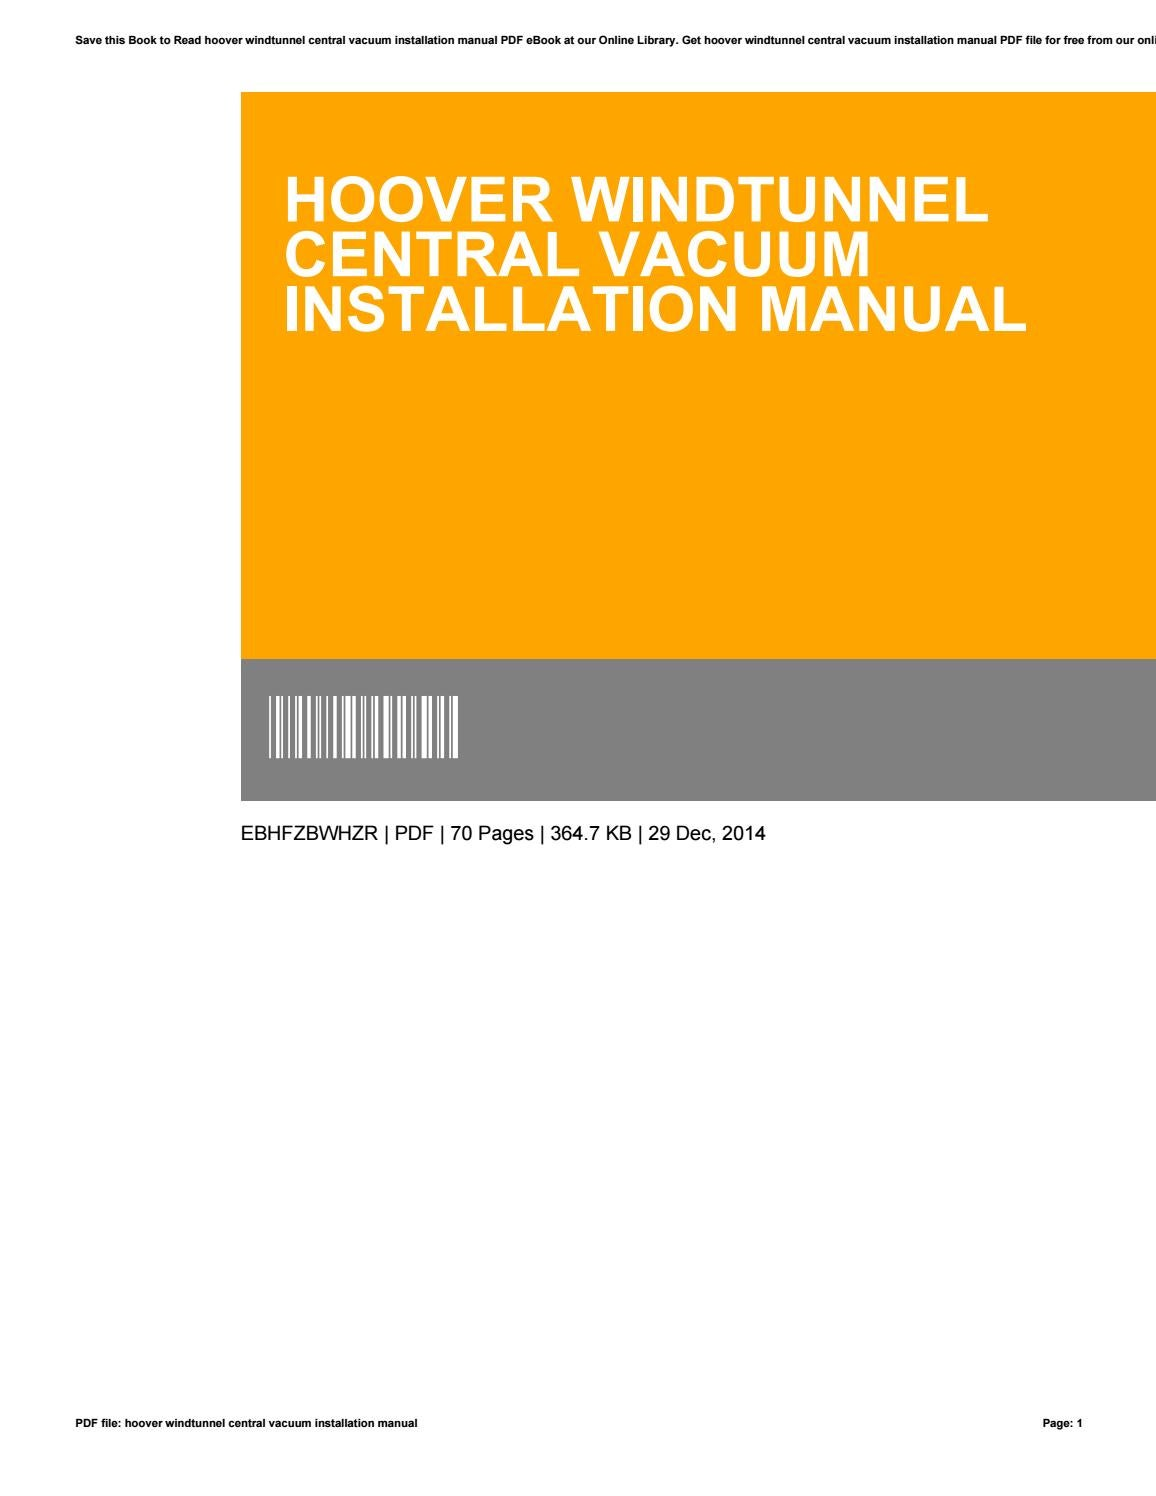 hoover generation 3 central vacuum manual